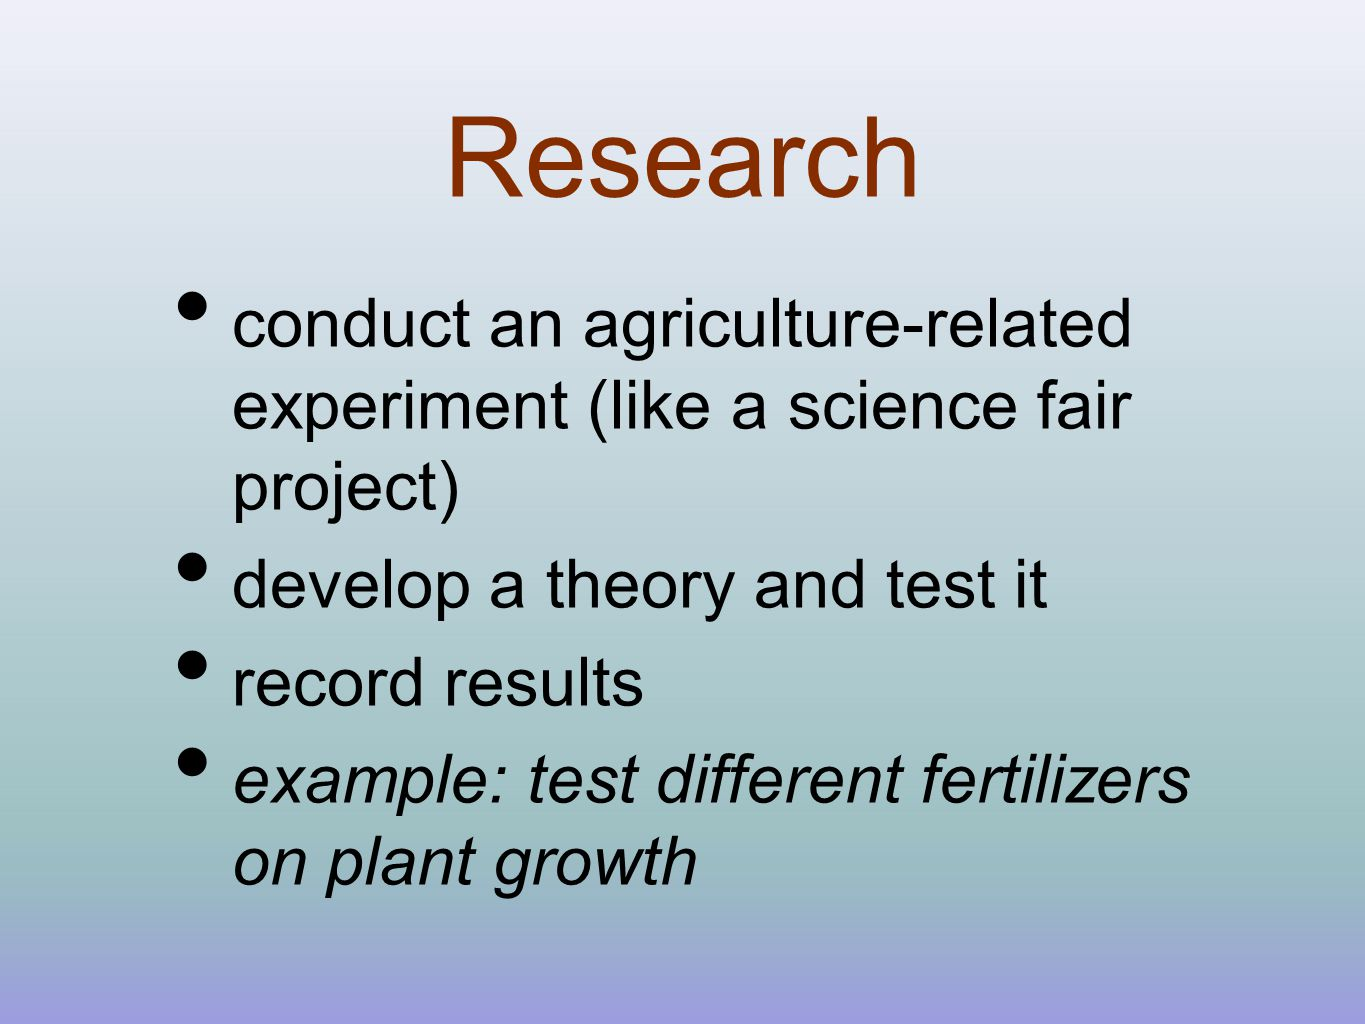 Research conduct an agriculture-related experiment (like a science fair project) develop a theory and test it record results example: test different fertilizers on plant growth